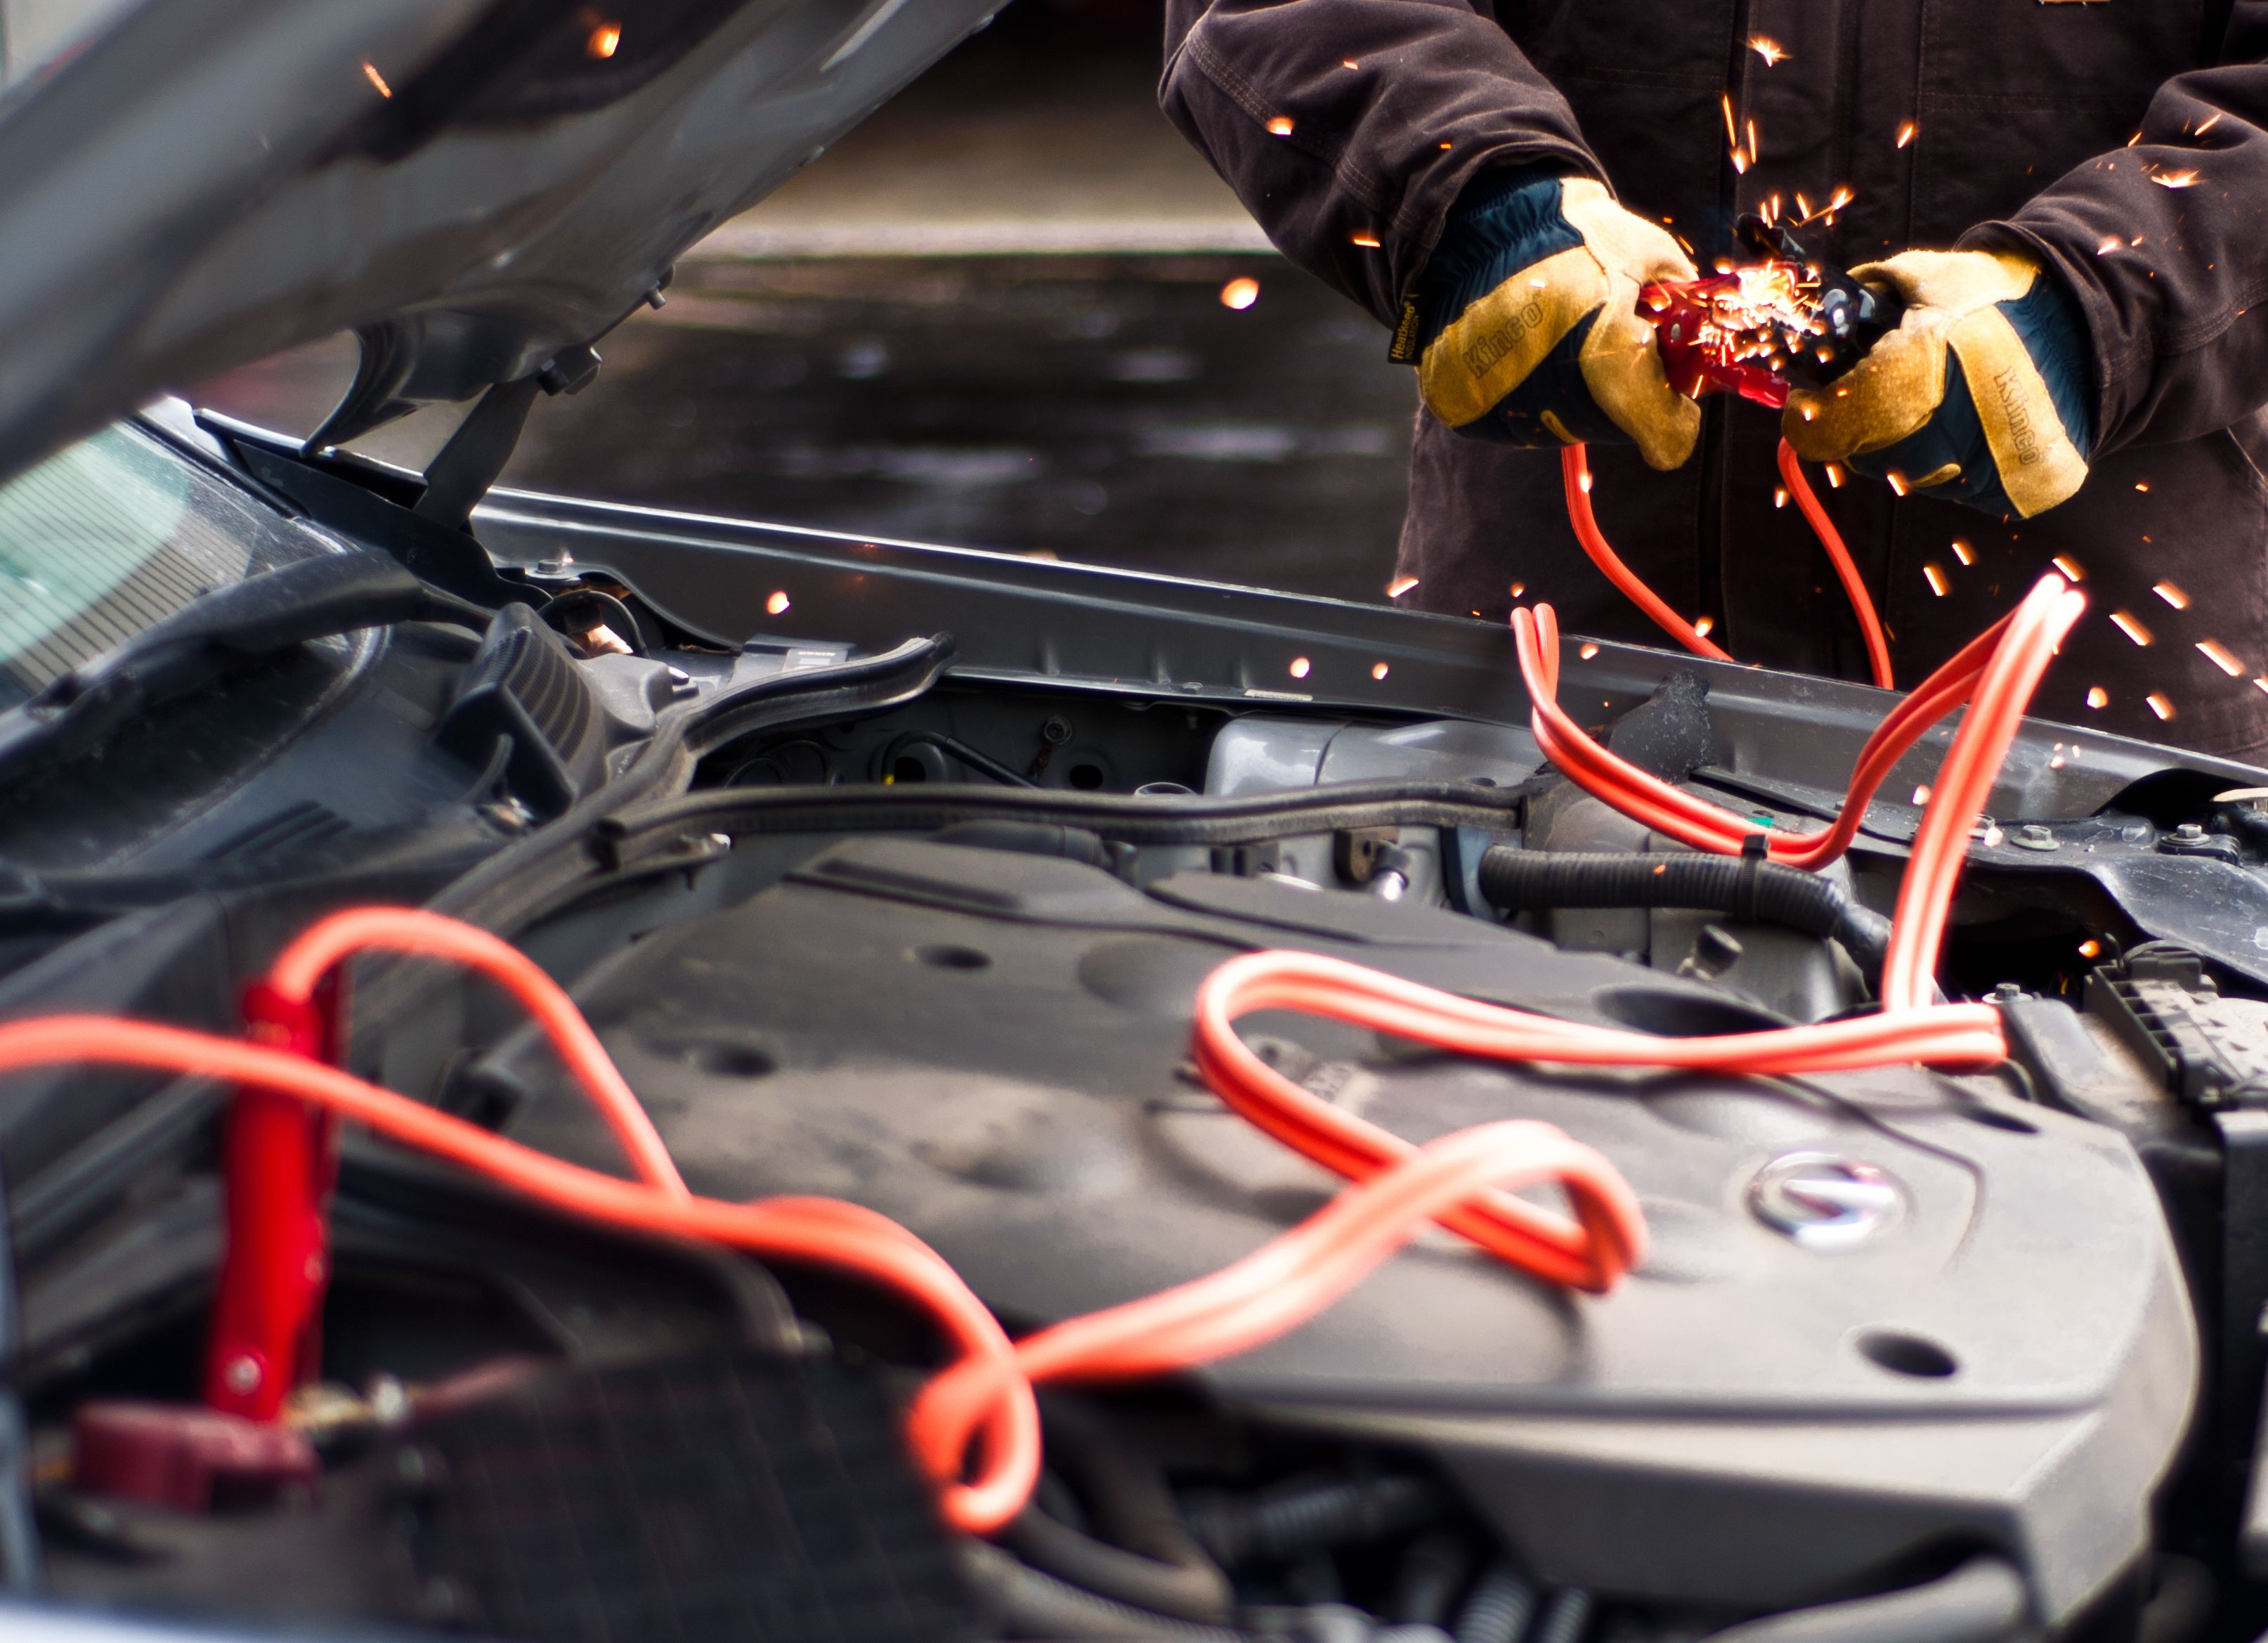 Where is the battery in a car - Can A Car Battery Really Explode